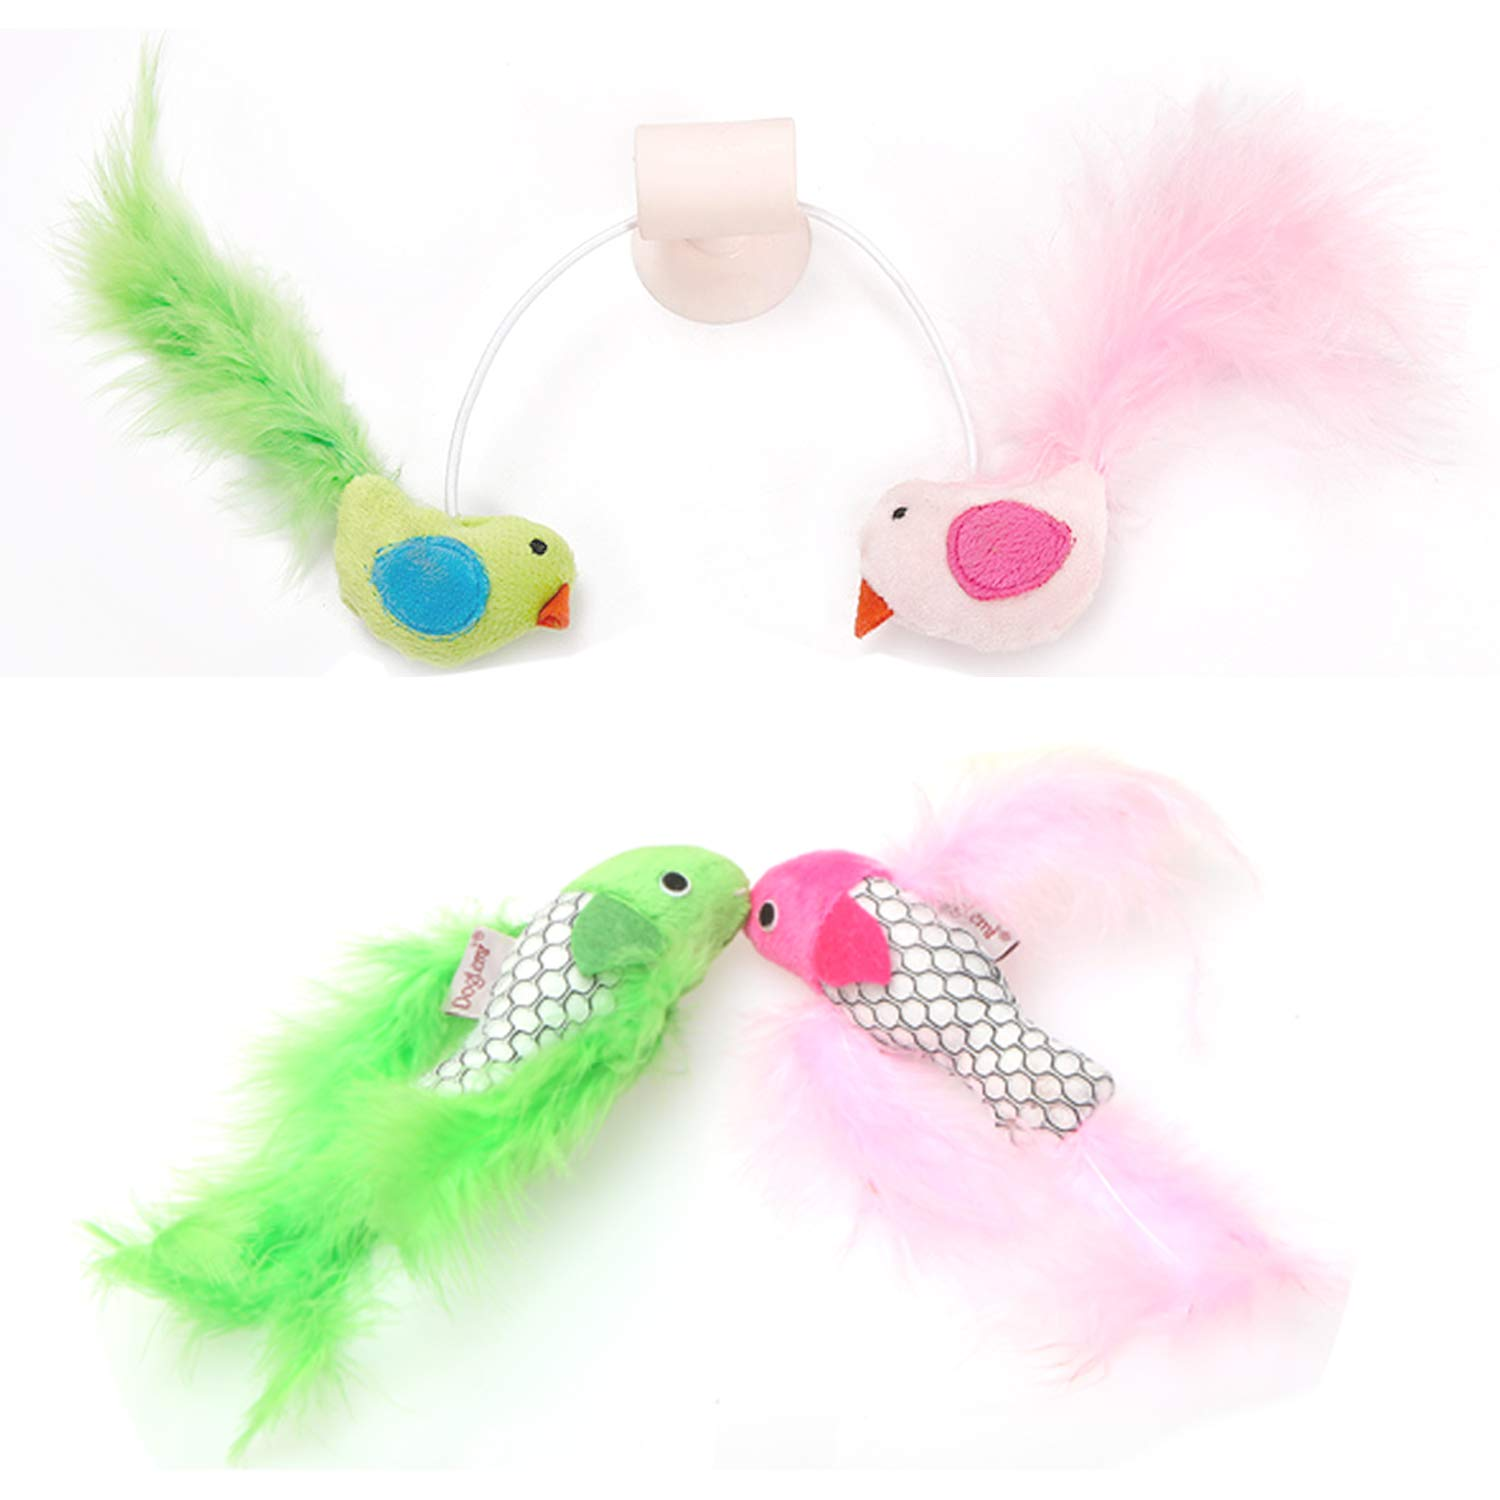 BoToKiNo Wall Mounted Cat Toy and Two Pet Feather Fish Toys-Cat Bird Interative Playing Toy Teaser Wand Sucker Window Cat toy, 3 Pcs